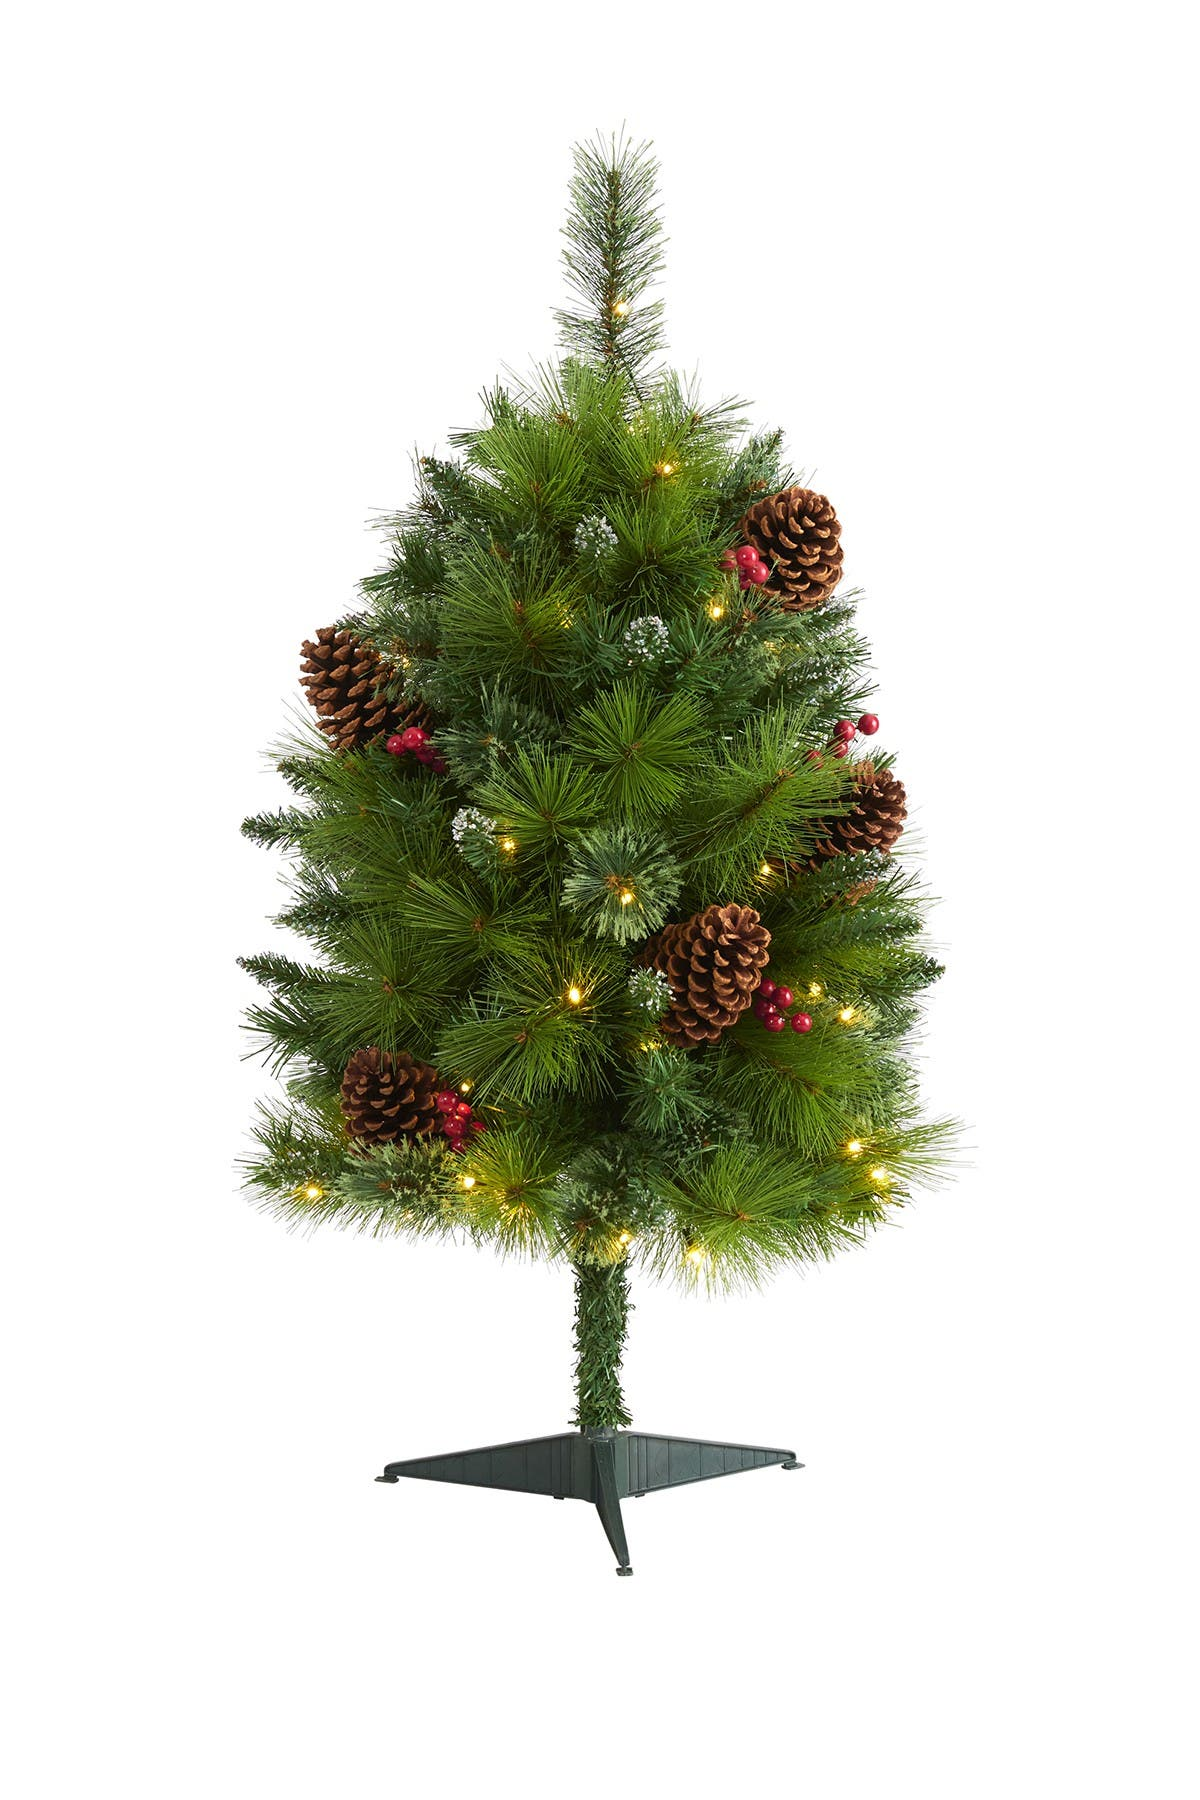 Image of NEARLY NATURAL 3ft. Montana Mixed Pine Artificial Christmas Tree